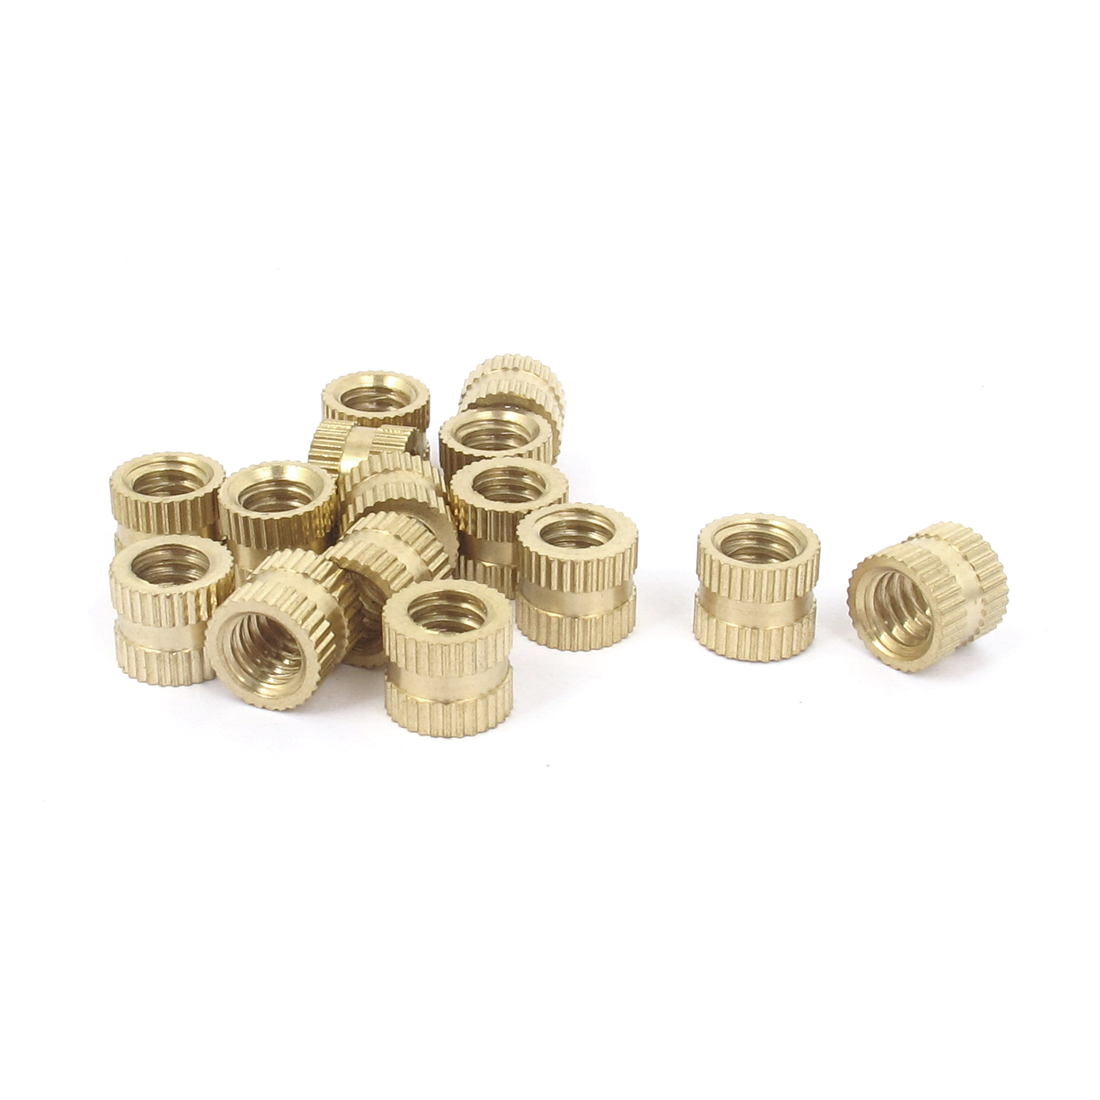 "15 Pcs 1/4""-20x8mm(L)x9mm(OD) Metric Threaded Brass Knurl Round Insert Nuts"